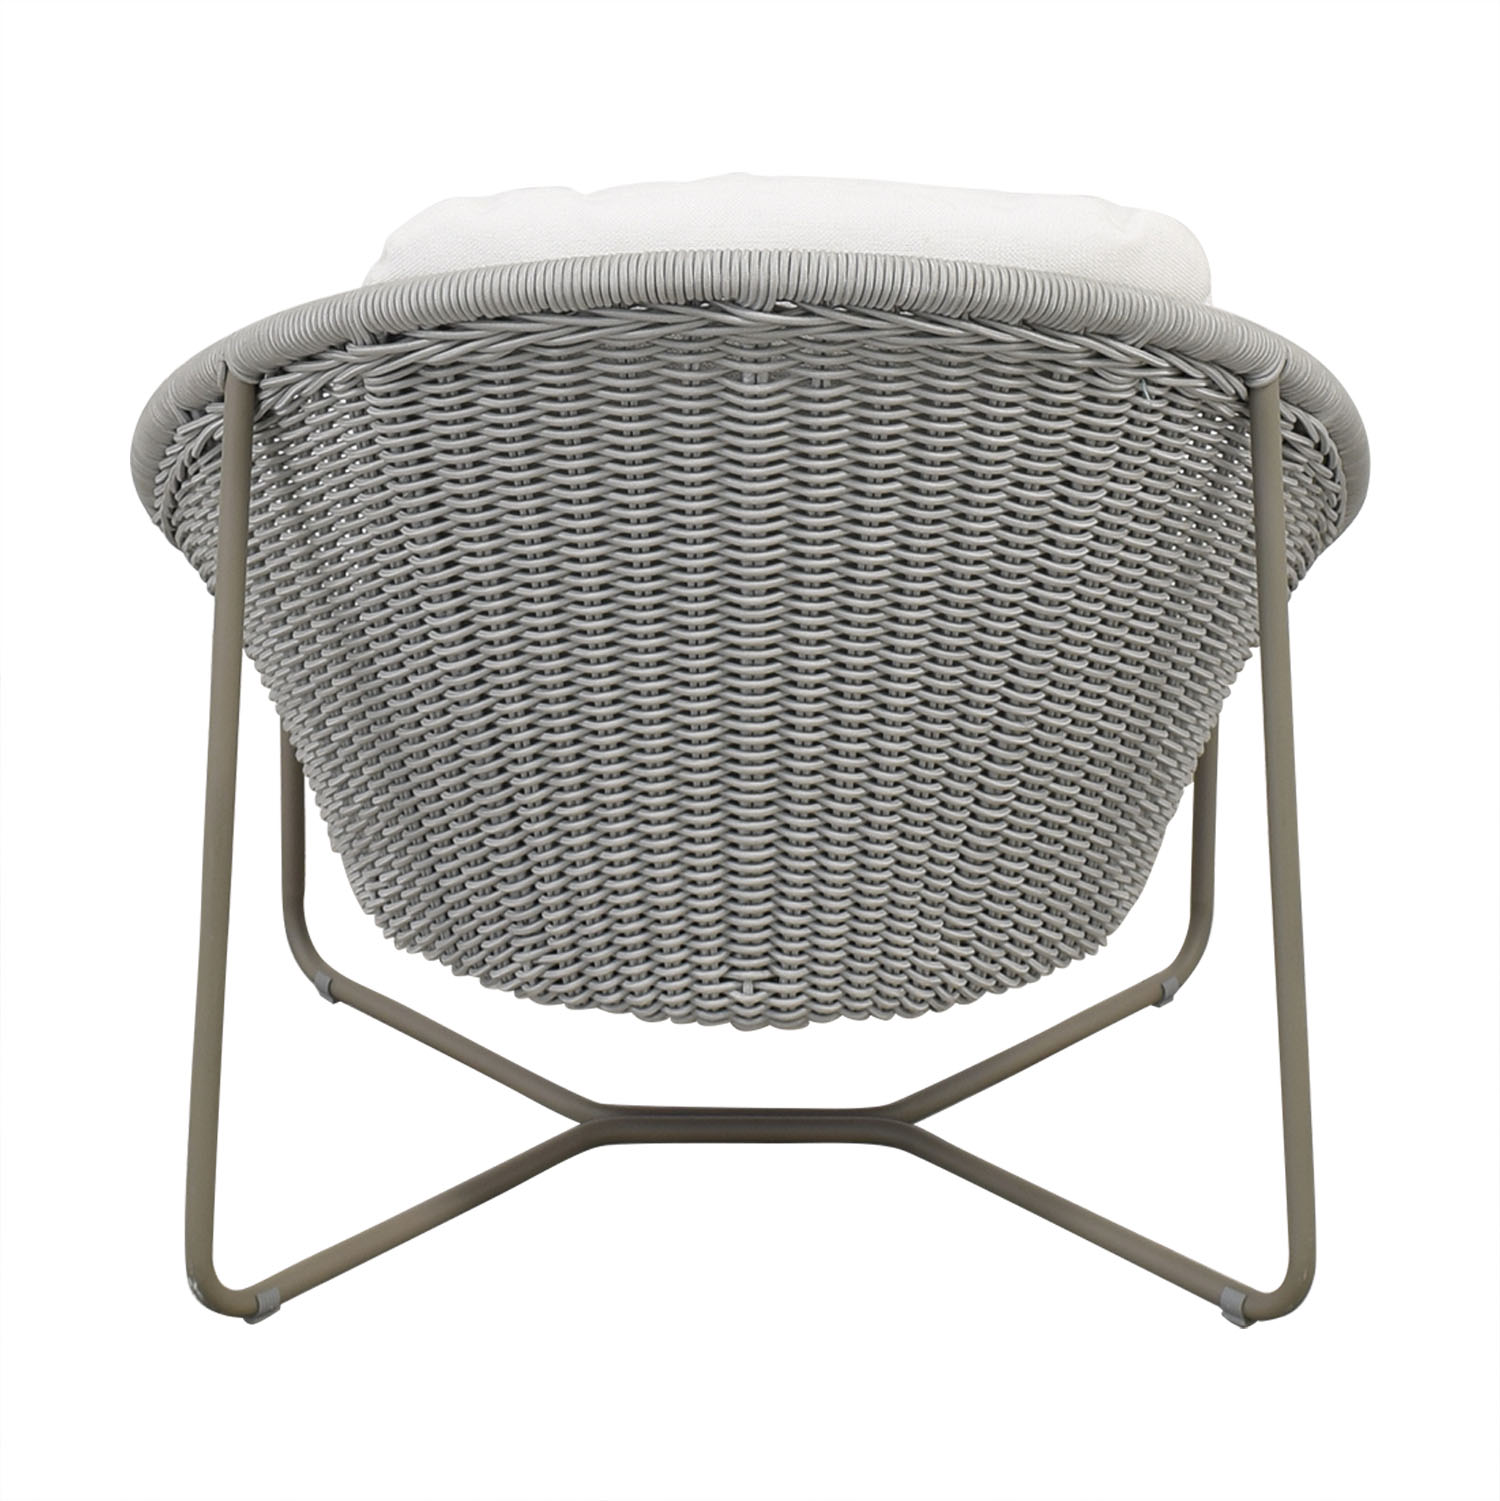 Crate & Barrel Crate & Barrel Morocco Oval Lounge Chair with Cushion coupon